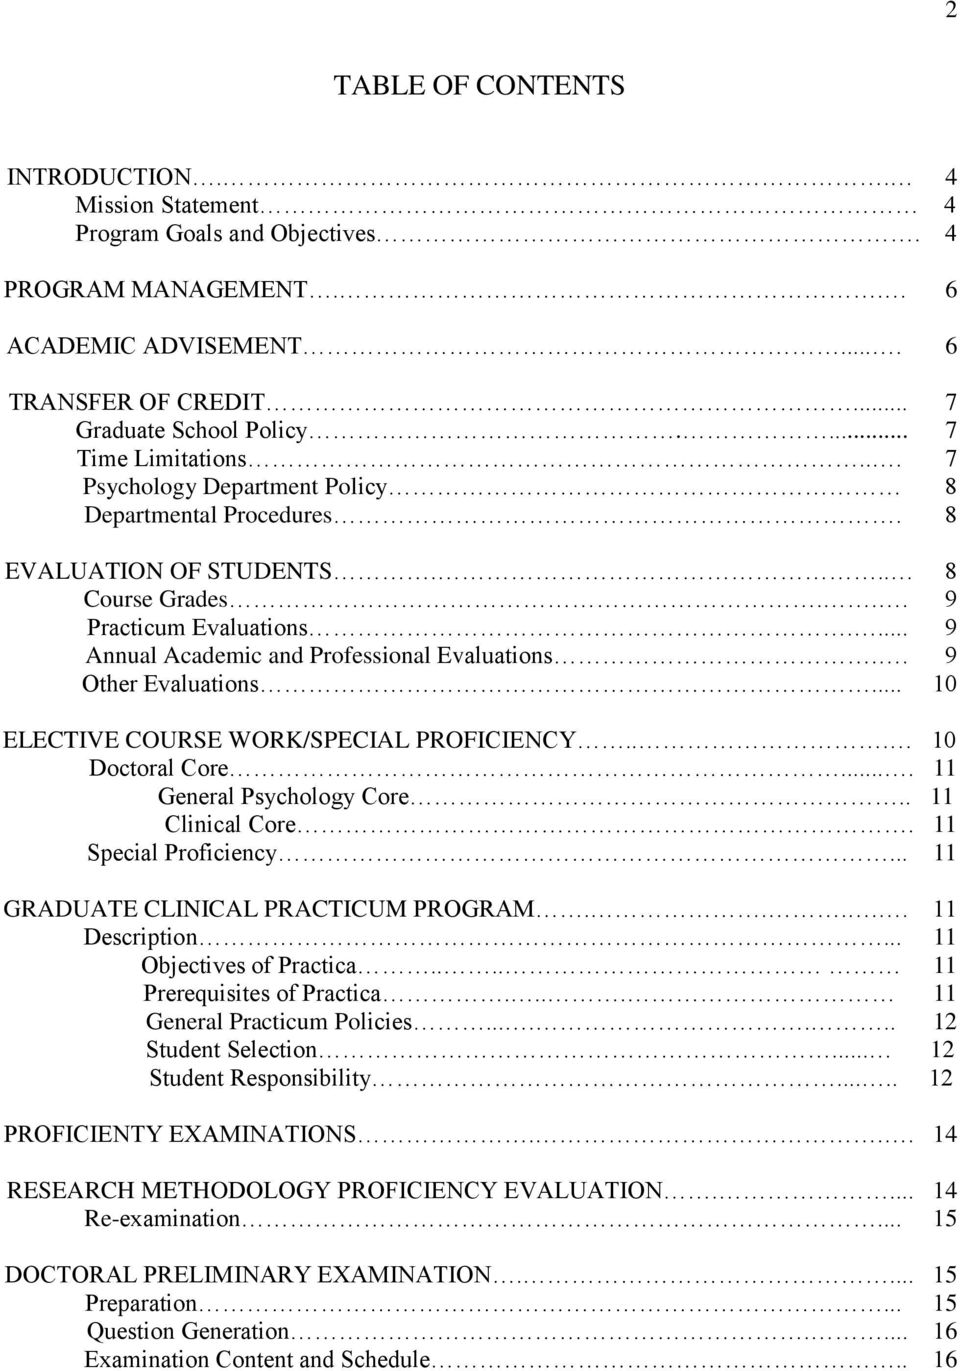 ... 9 Annual Academic and Professional Evaluations.. 9 Other Evaluations... 10 ELECTIVE COURSE WORK/SPECIAL PROFICIENCY... 10 Doctoral Core.... 11 General Psychology Core.. 11 Clinical Core.